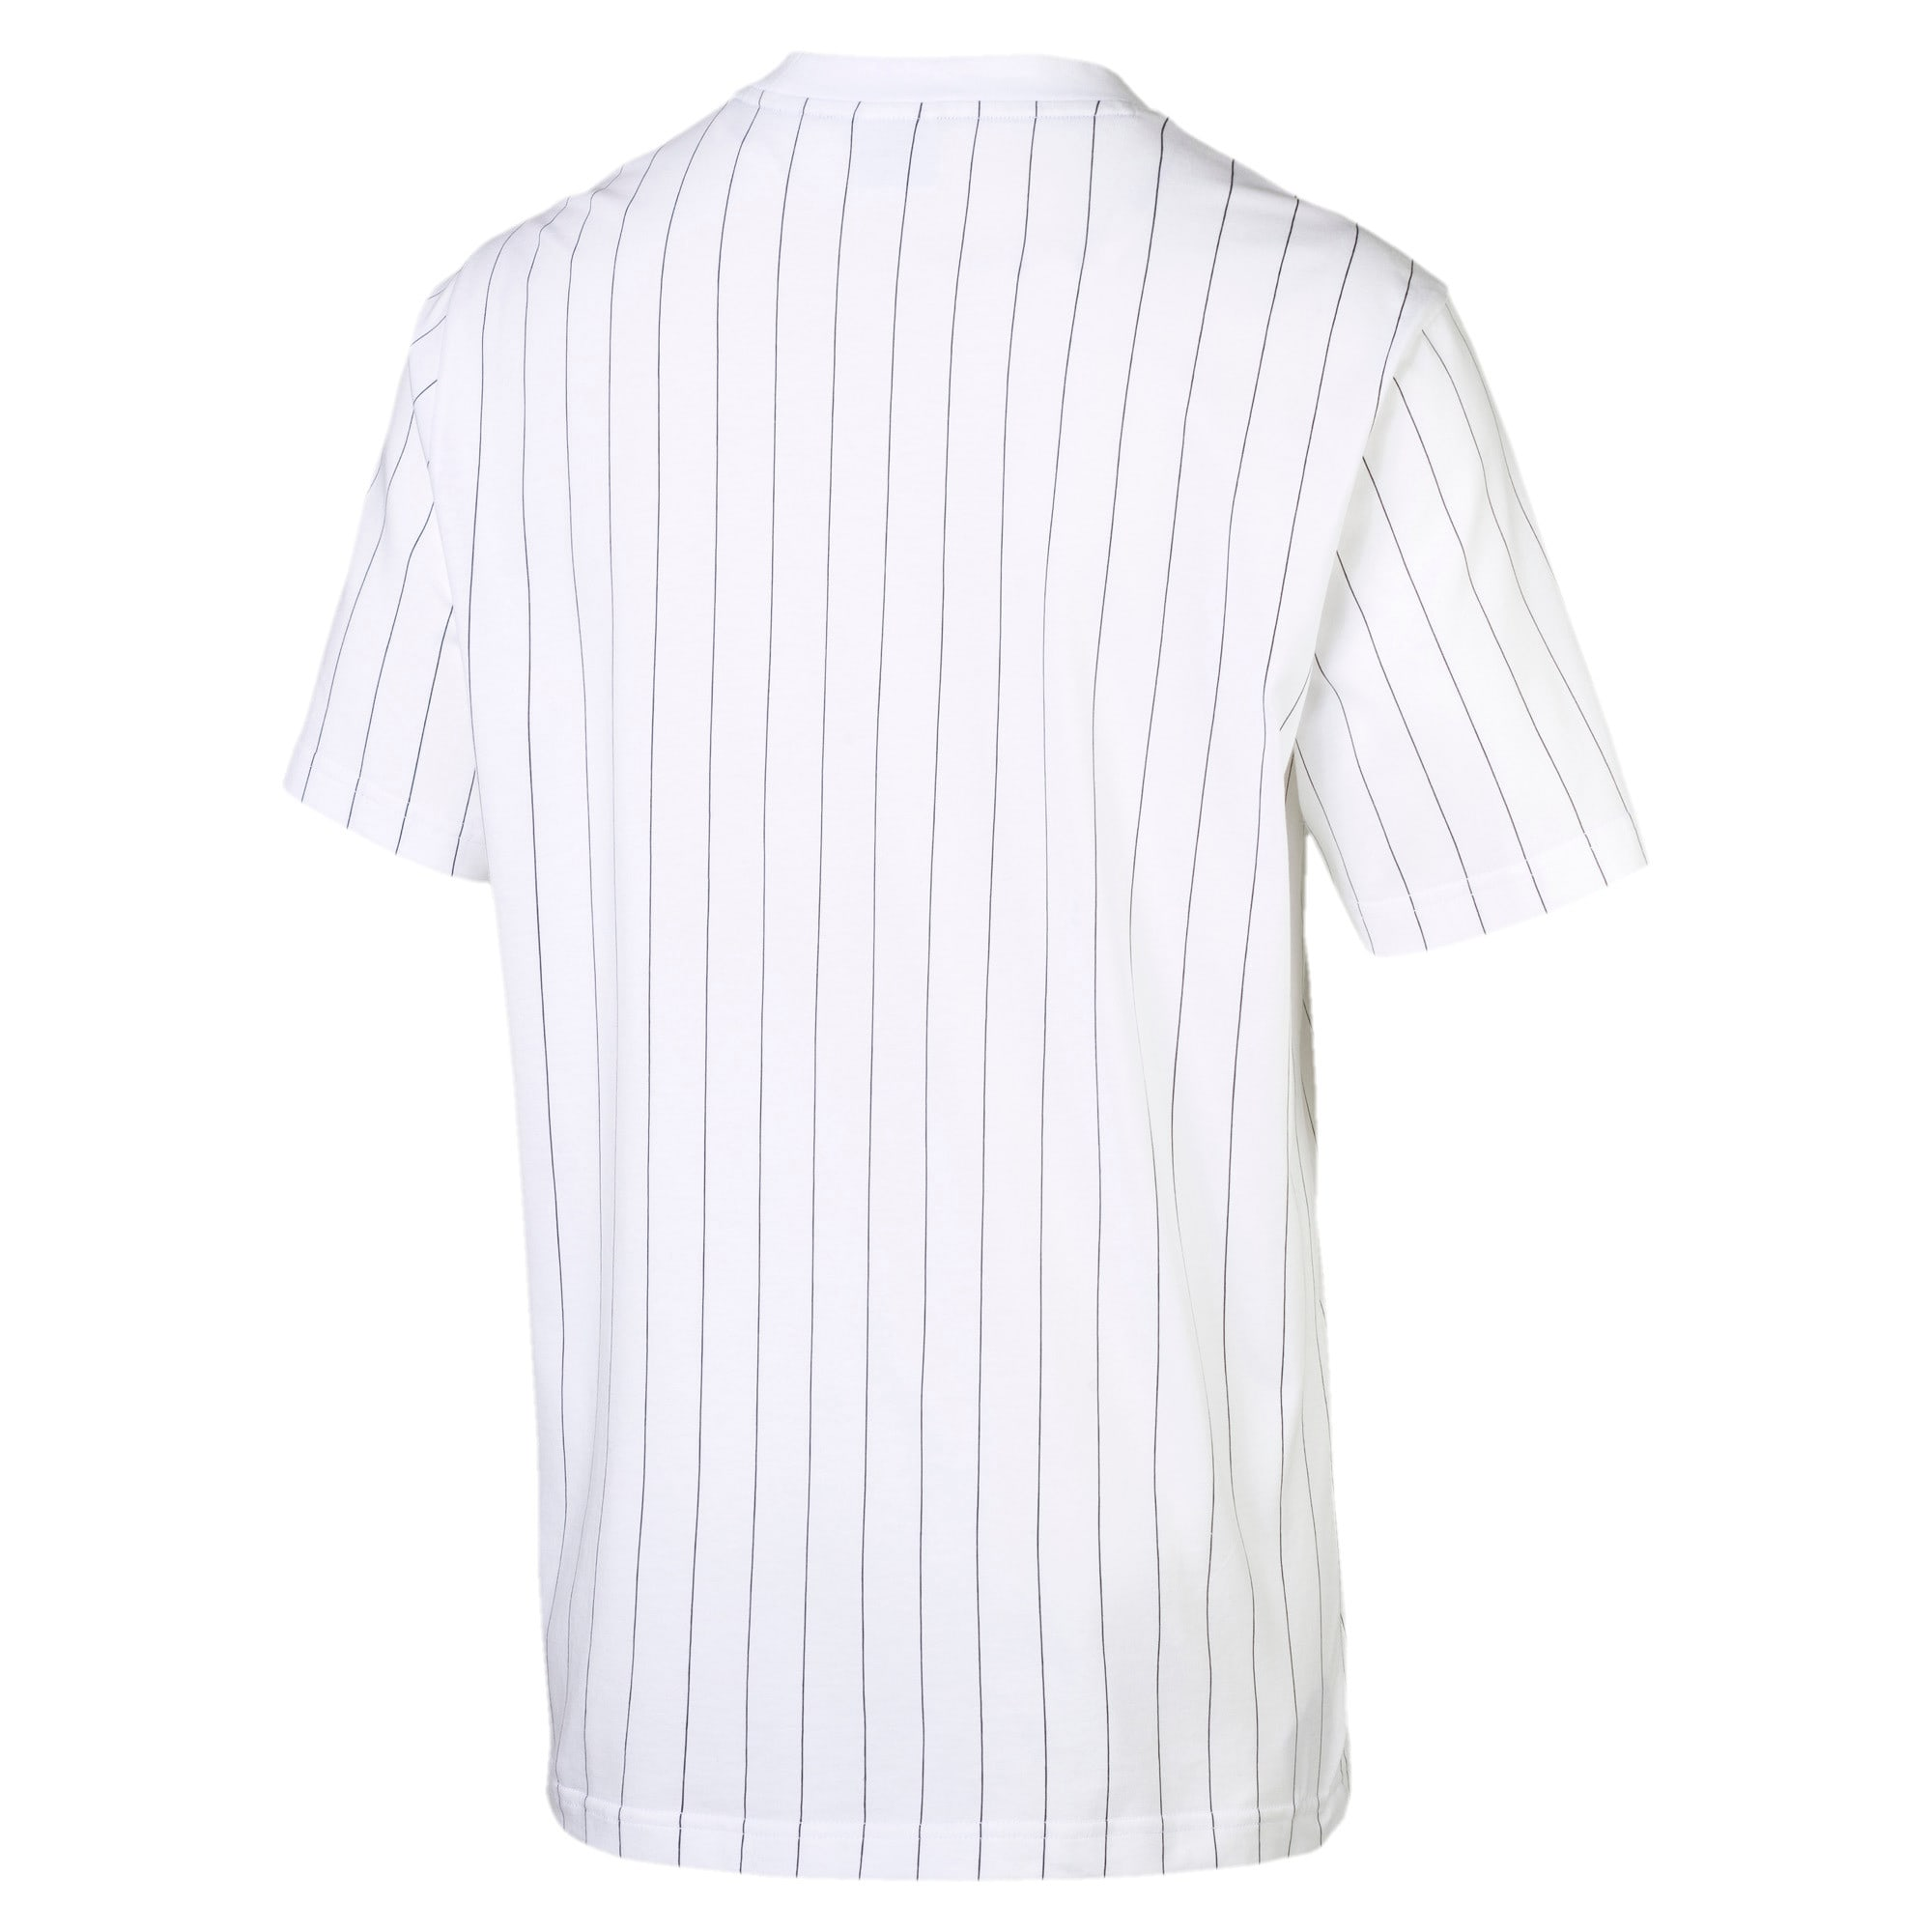 Thumbnail 4 of Archive Pinstripe Herren T-Shirt, Puma White, medium